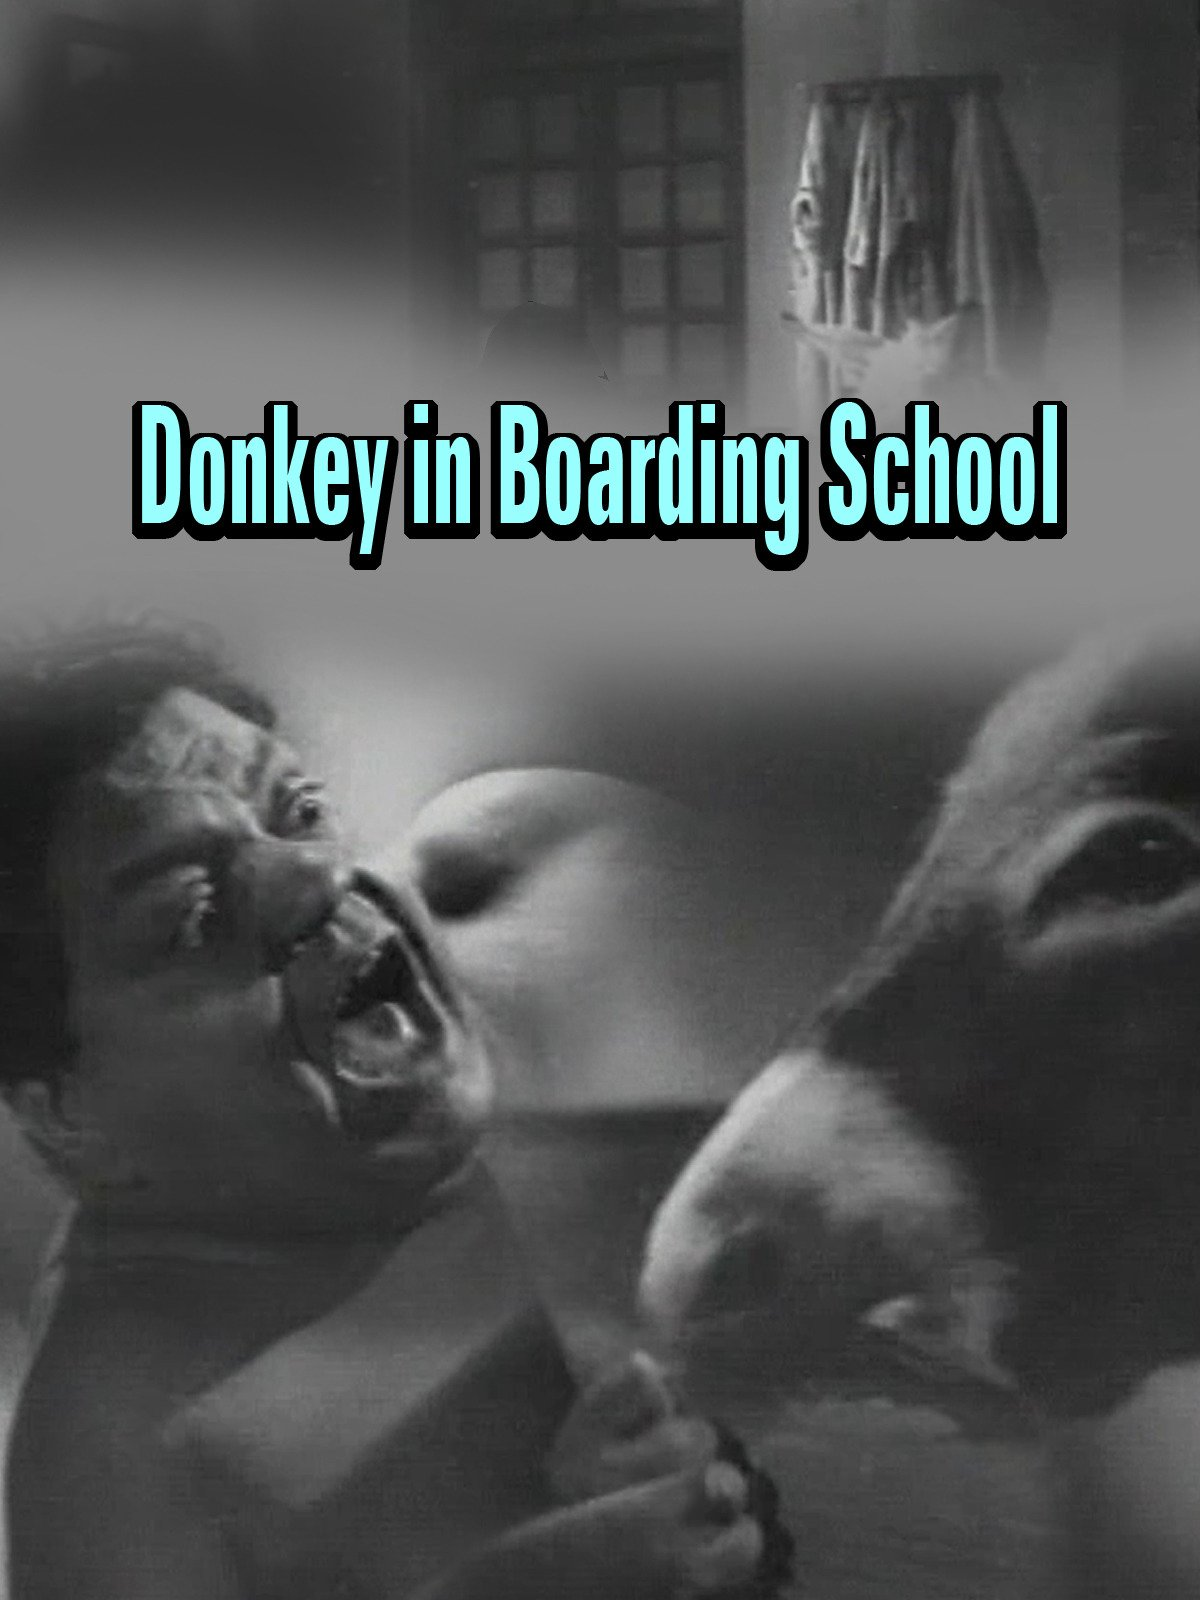 Clip: Donkey in Boarding School